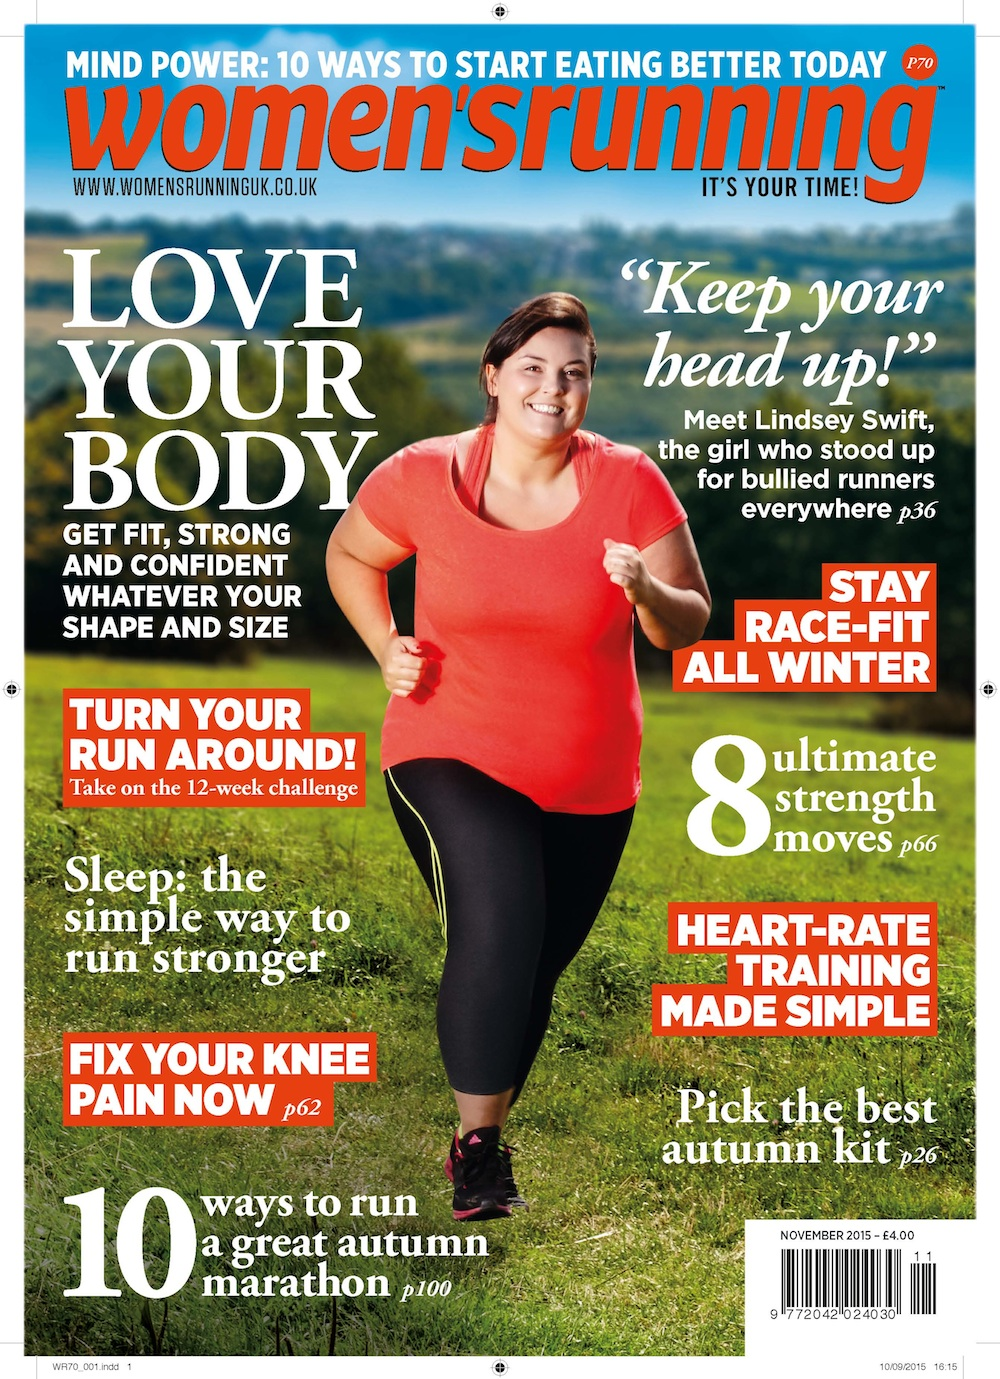 The Rise Of The Fit Fat Girl Meet The Curvy Women Finally Proving That Fat Does Not Mean Unfit Healthista People who regularly take part in these activities are more likely to be physically fit in terms of cardiorespiratory endurance. fit fat girl meet the curvy women